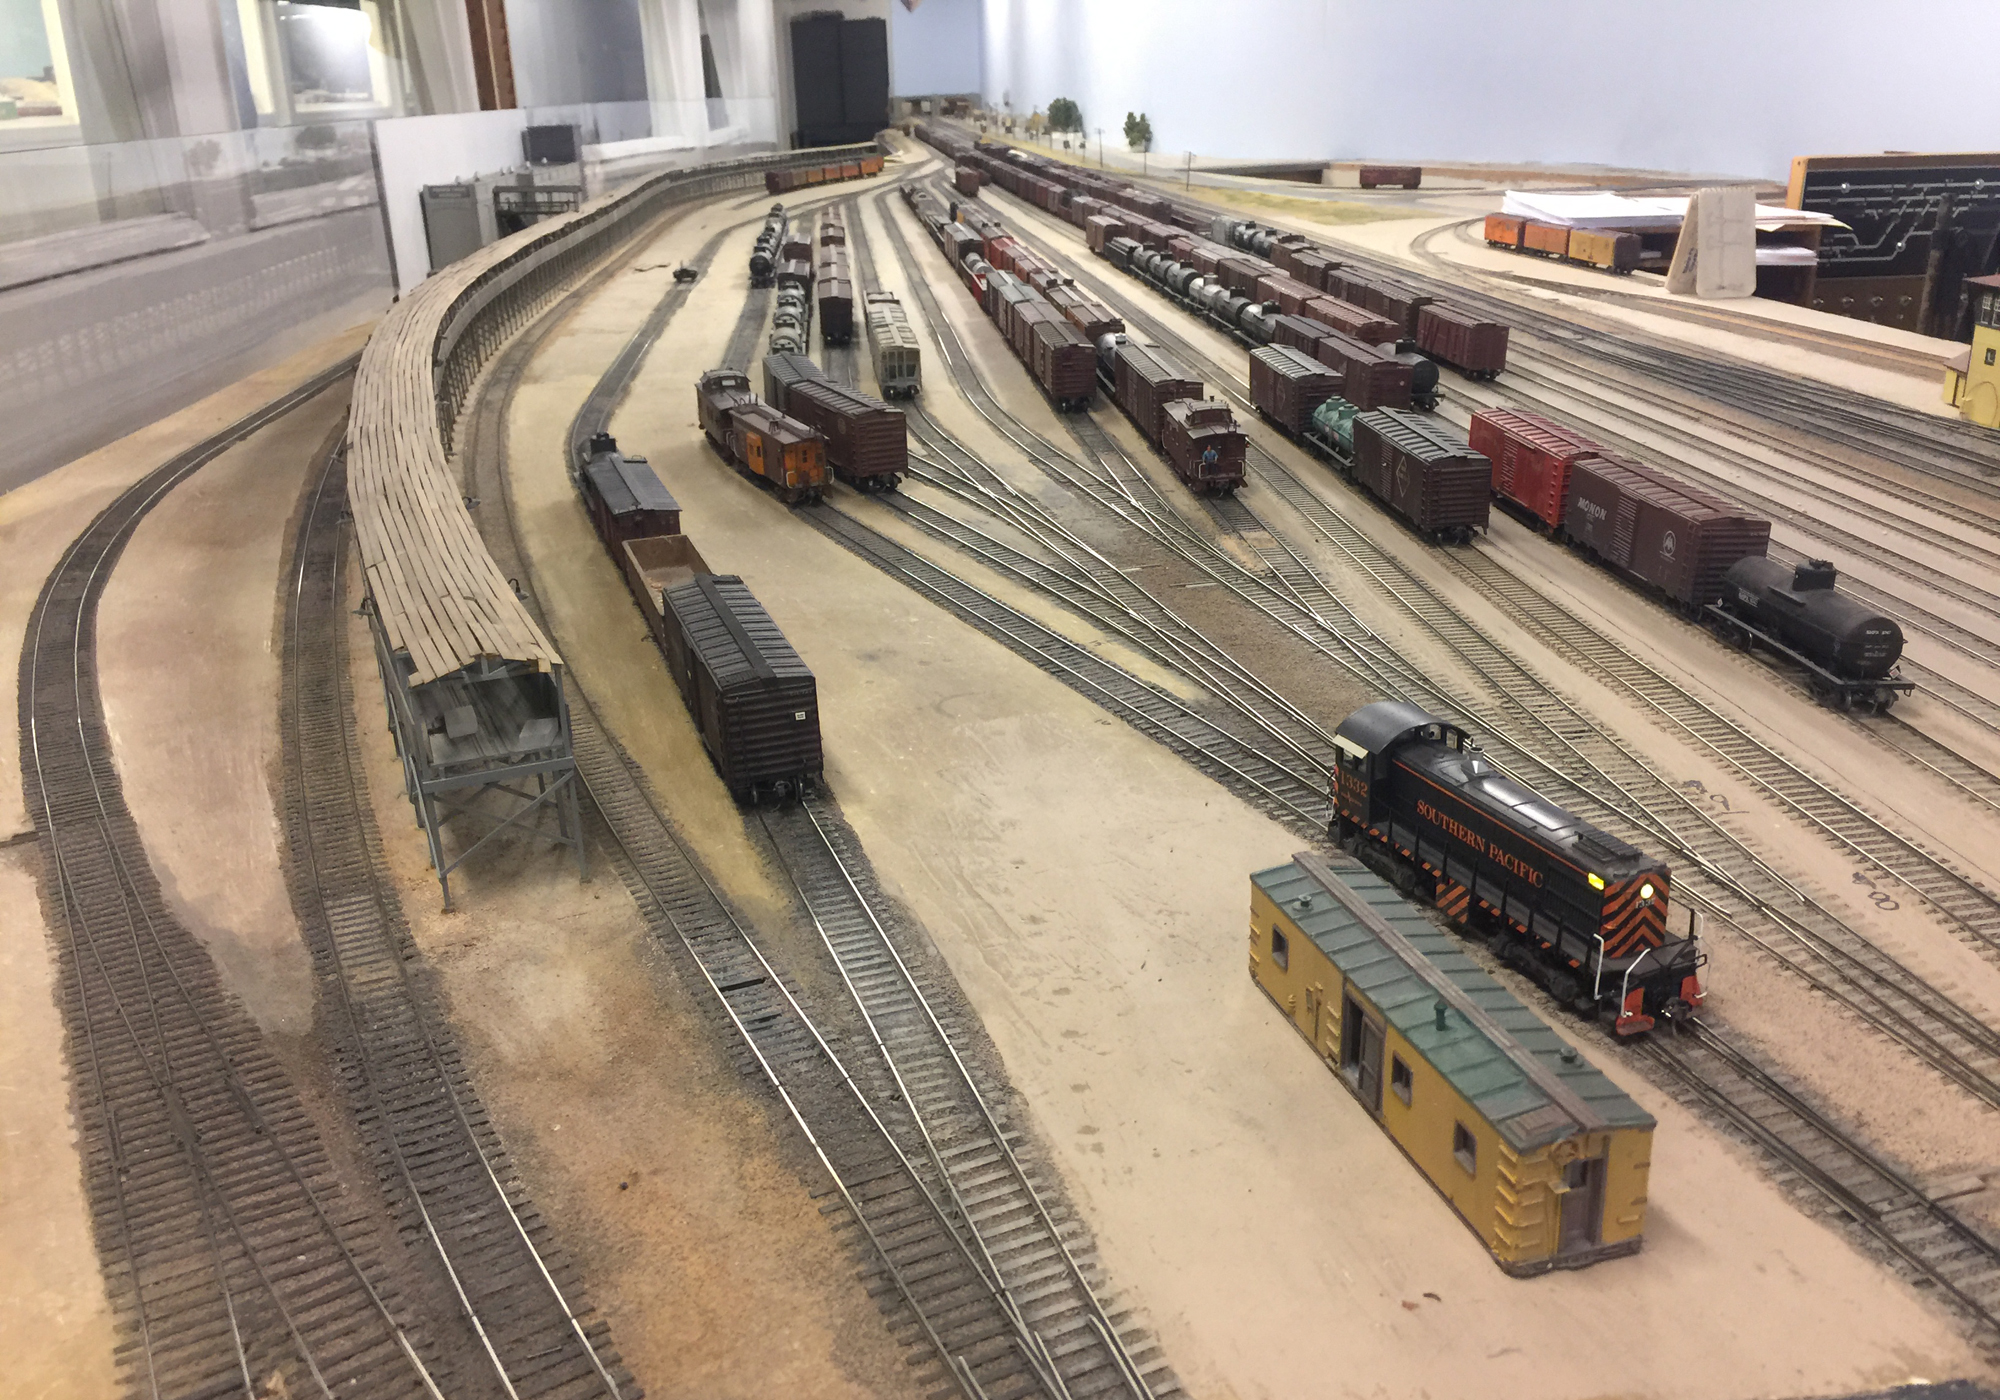 One of the many railroad yards at the La Mesa Model Railroad Club in San Diego, California, USA.